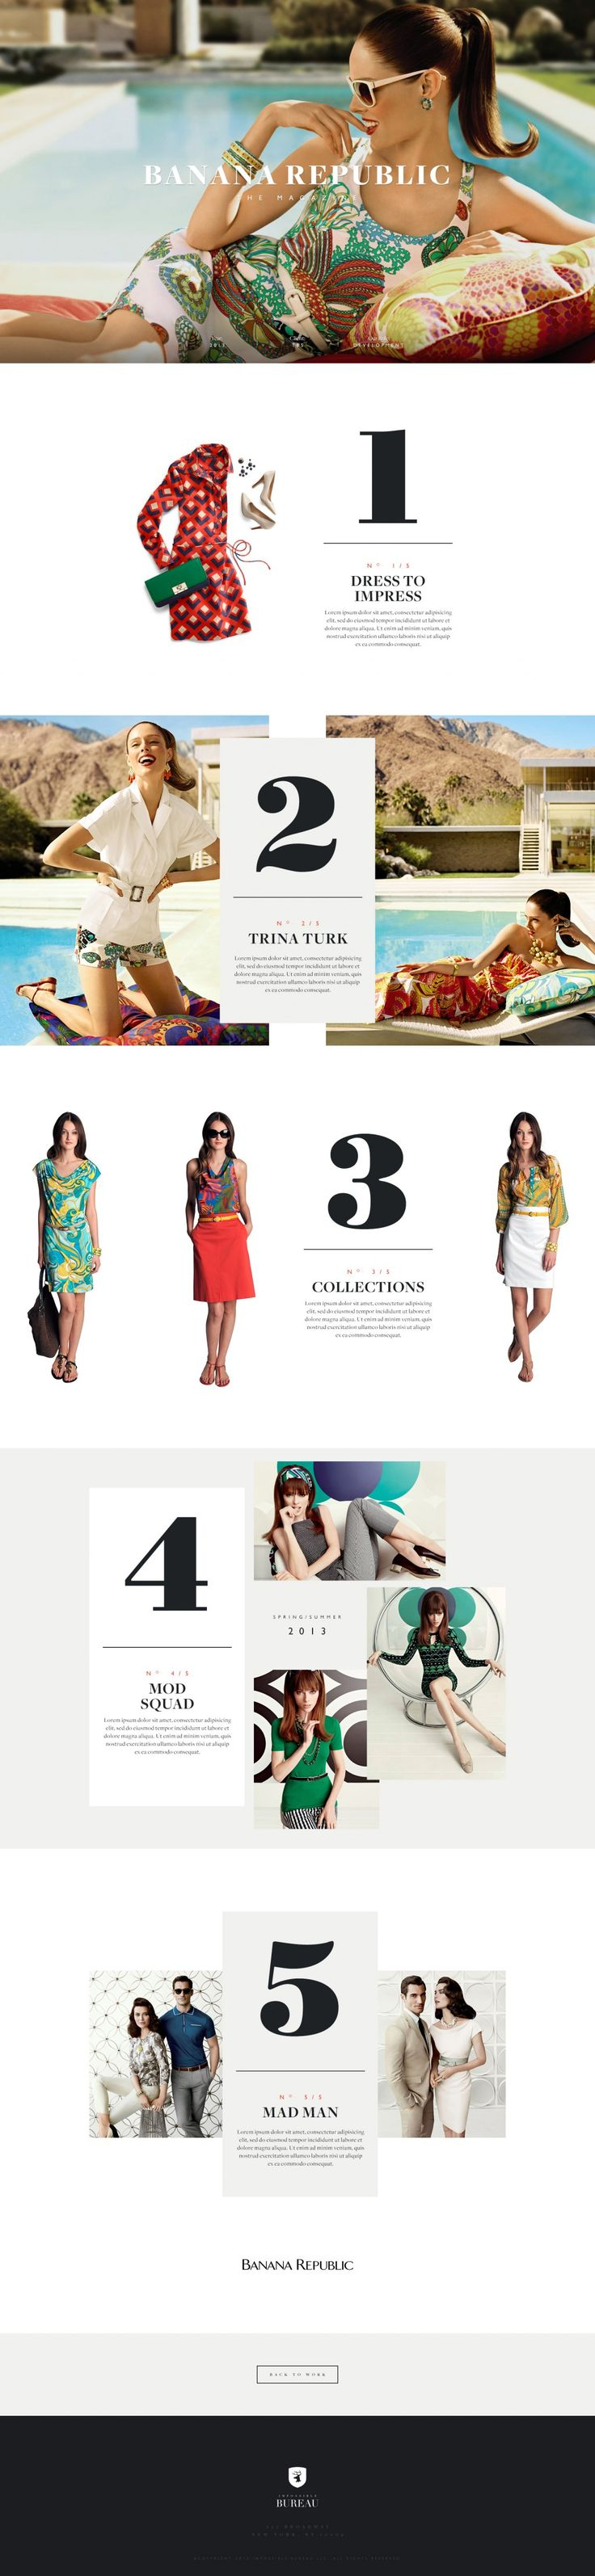 Banana Republic The Magazine Case Study